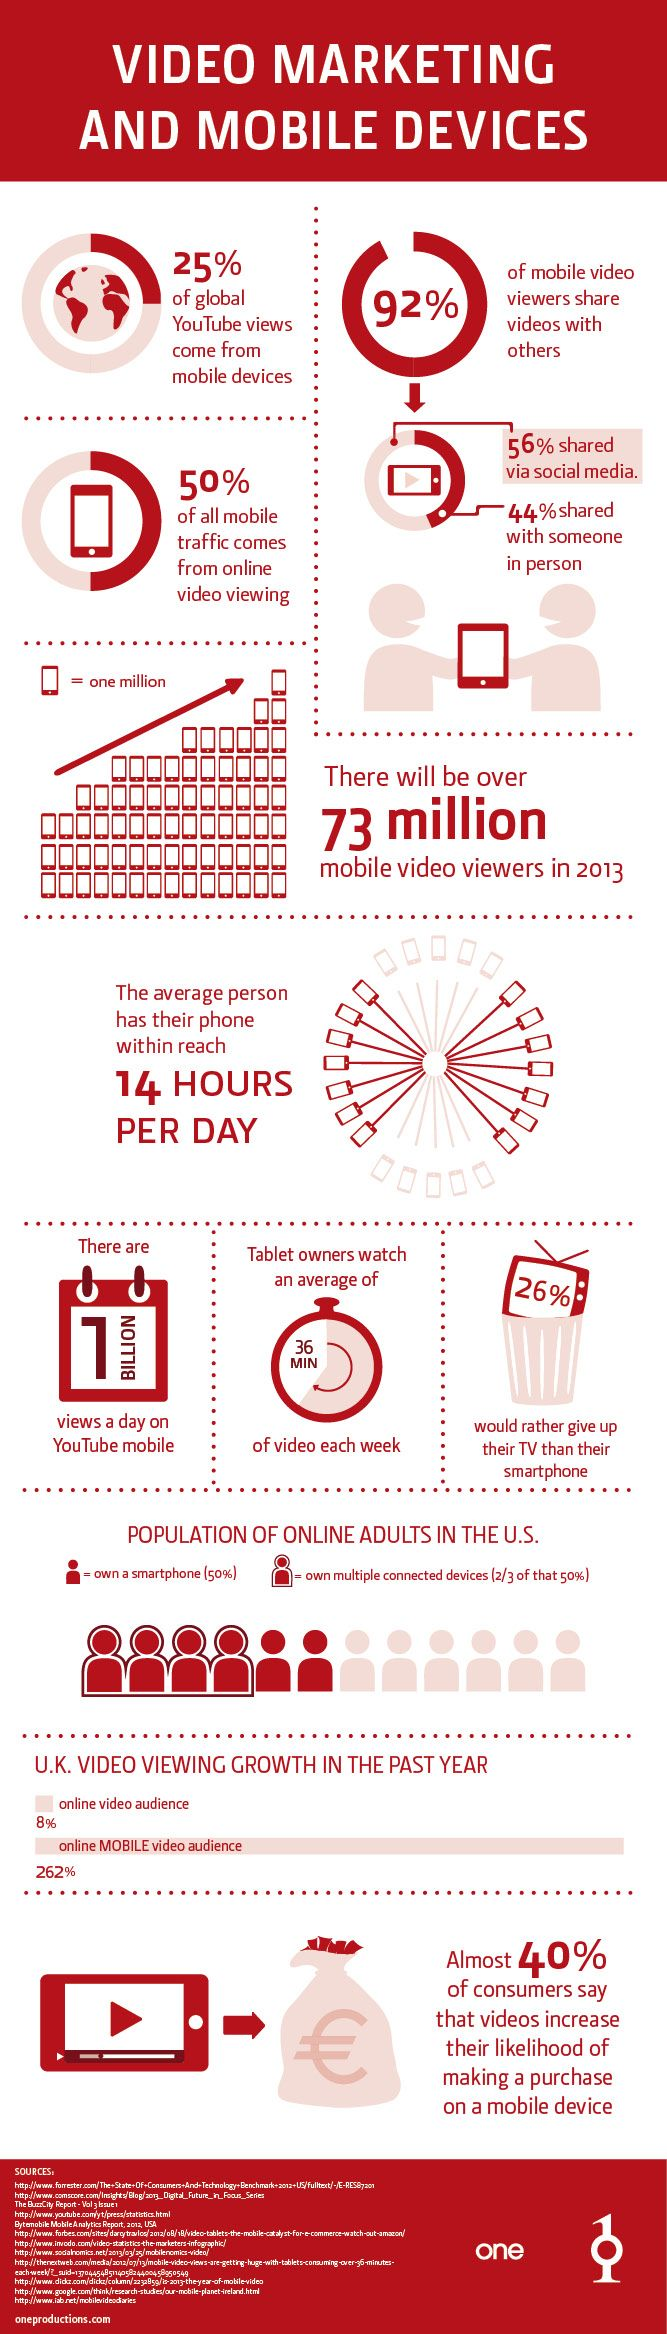 Video marketing and mobile devices #infographic